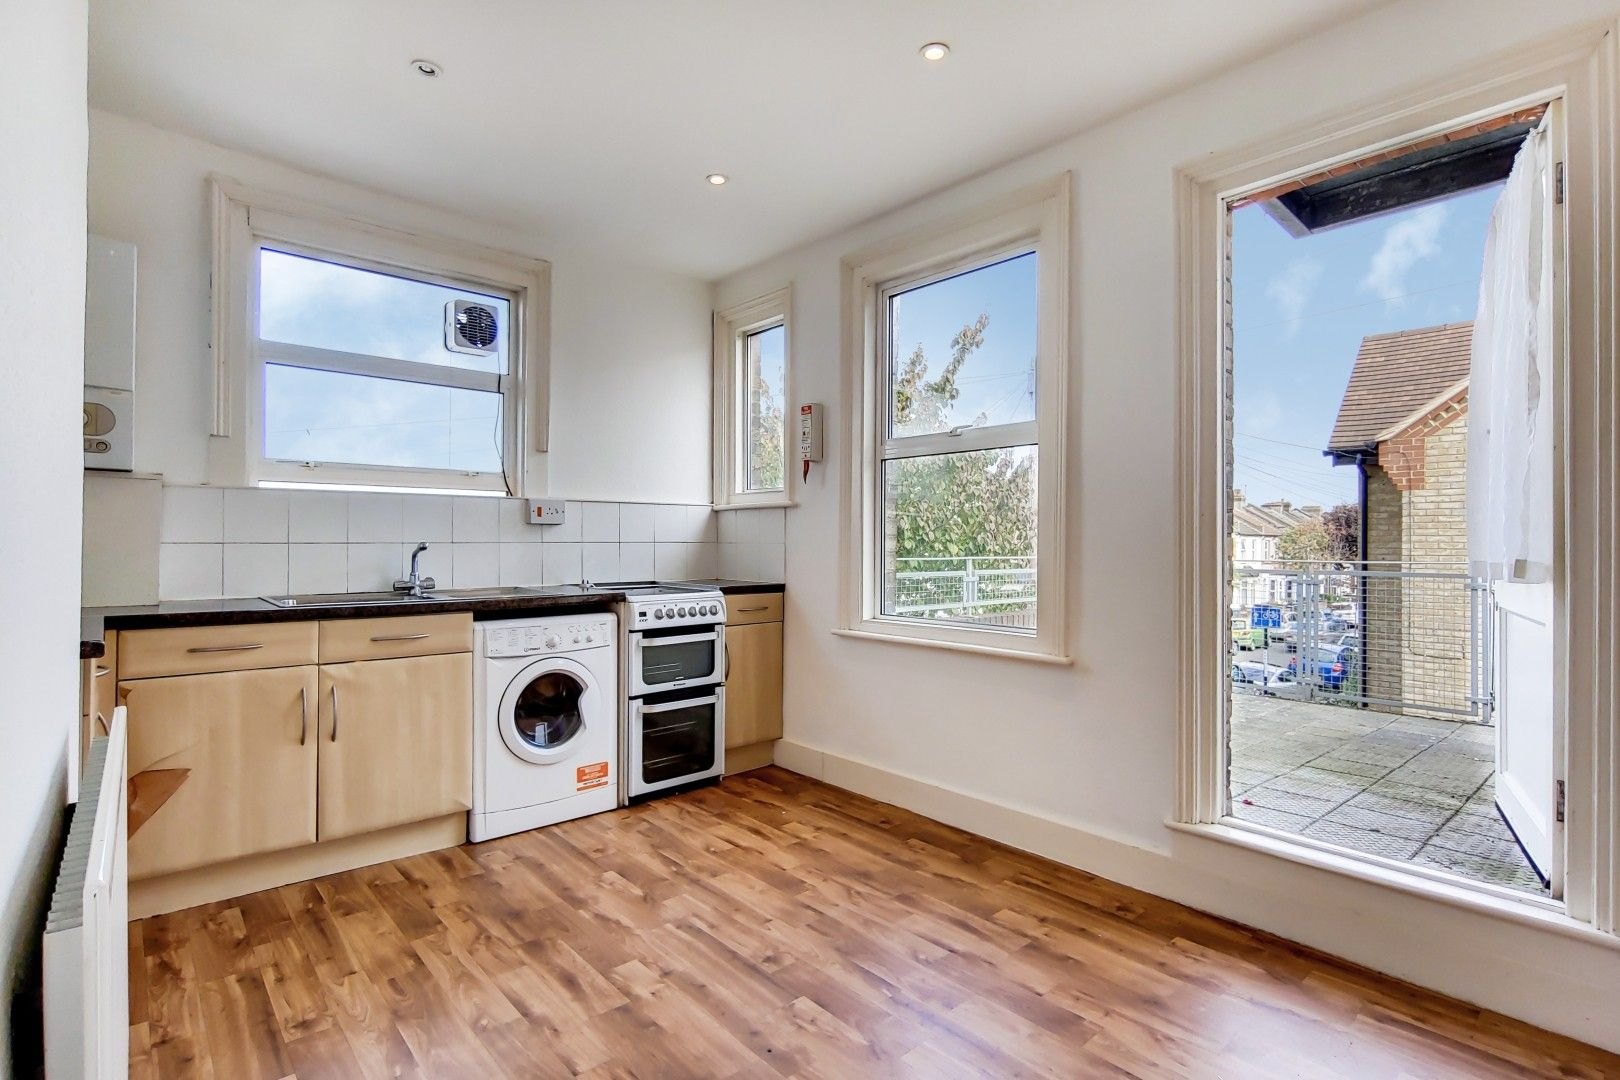 3 bed flat for sale in Portland Road - Property Image 1